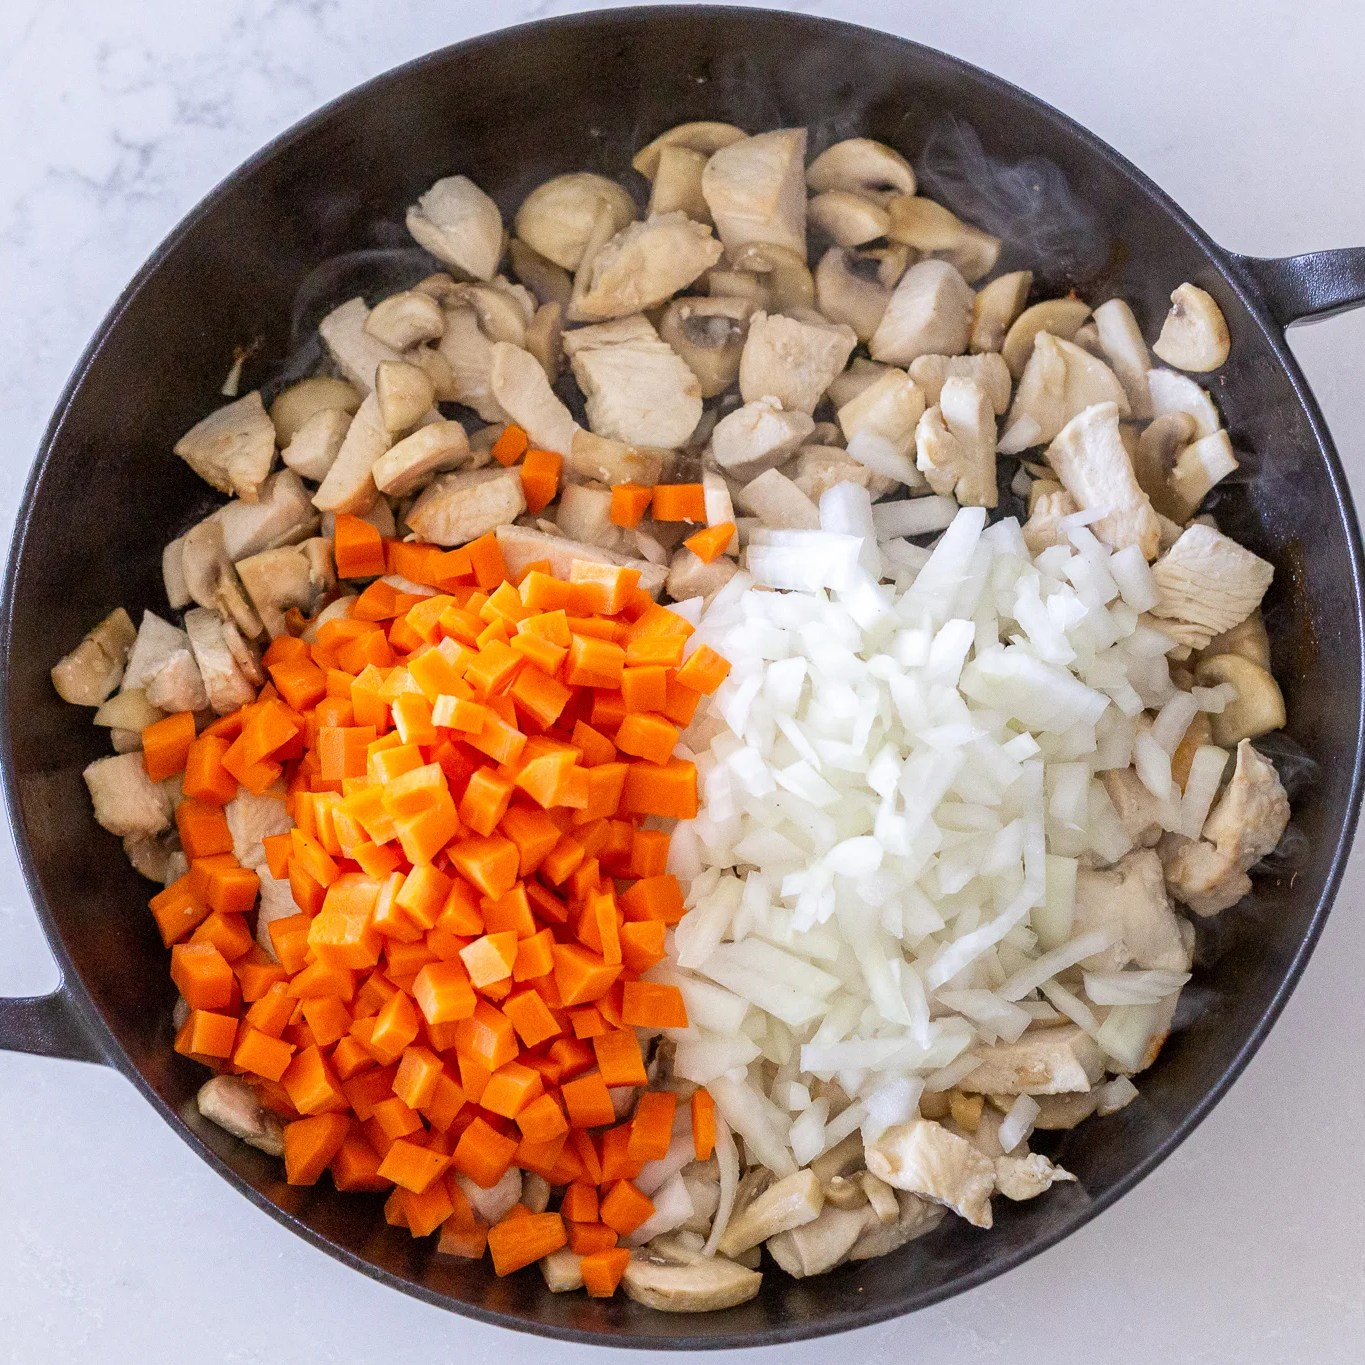 carrots and onion added in a pan